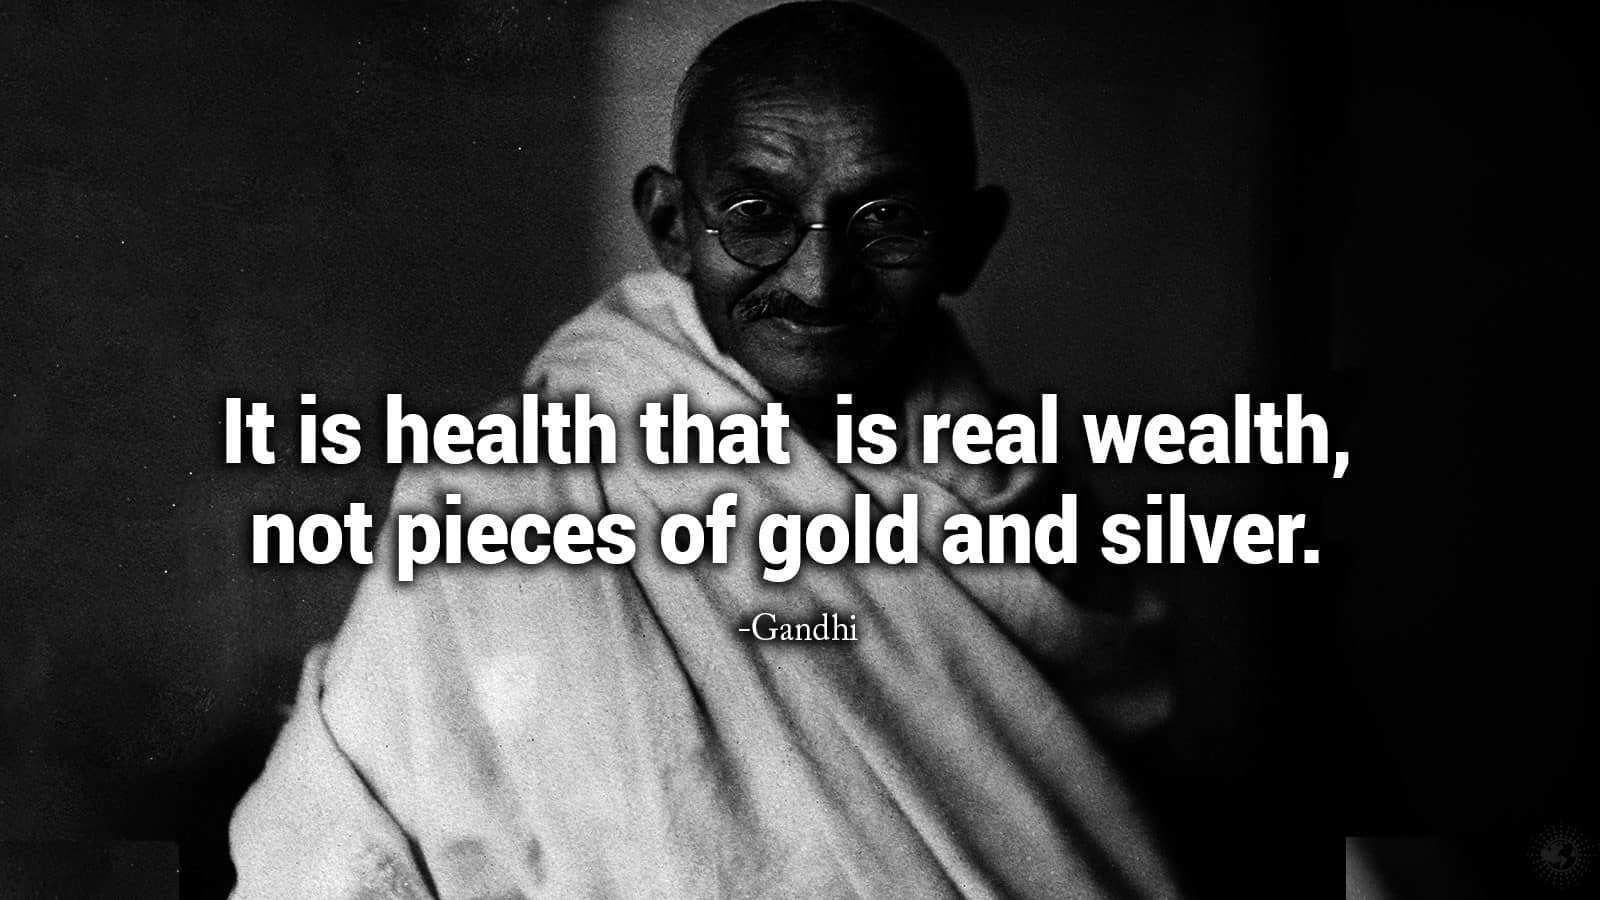 3 Inspirational Quotes About Life from Gandhi  Power of Positivity